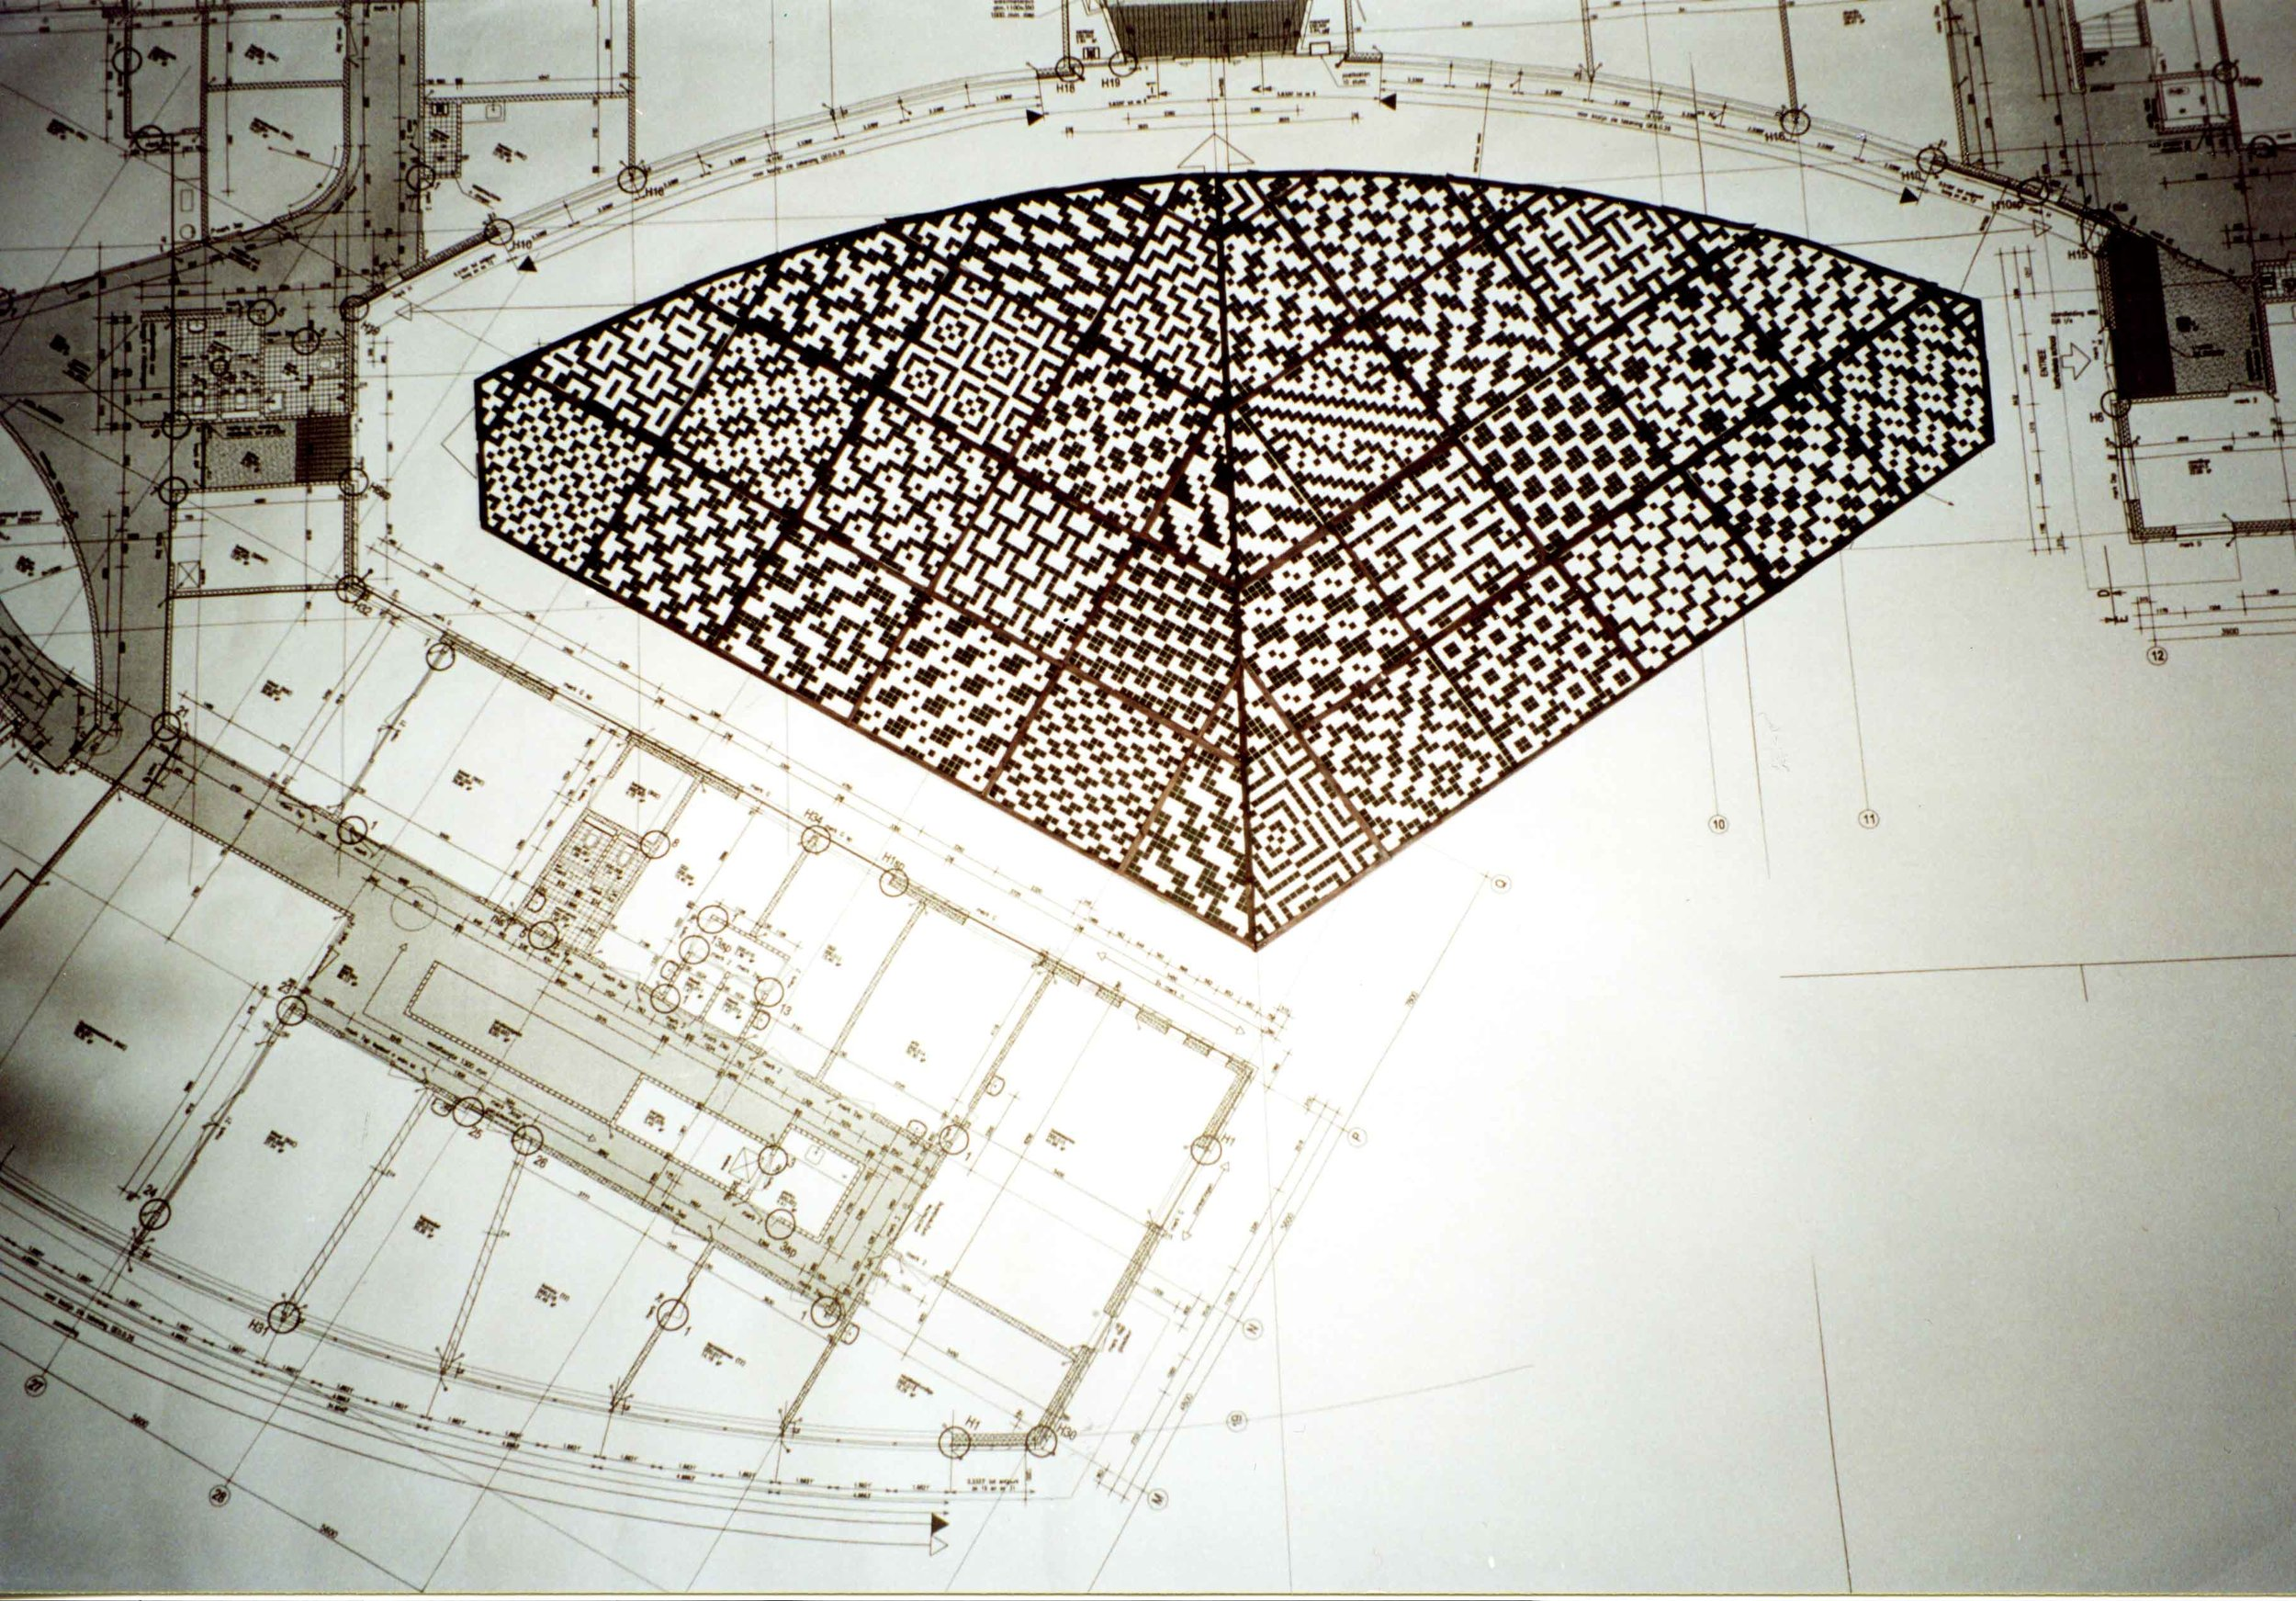 Design drawing for the square